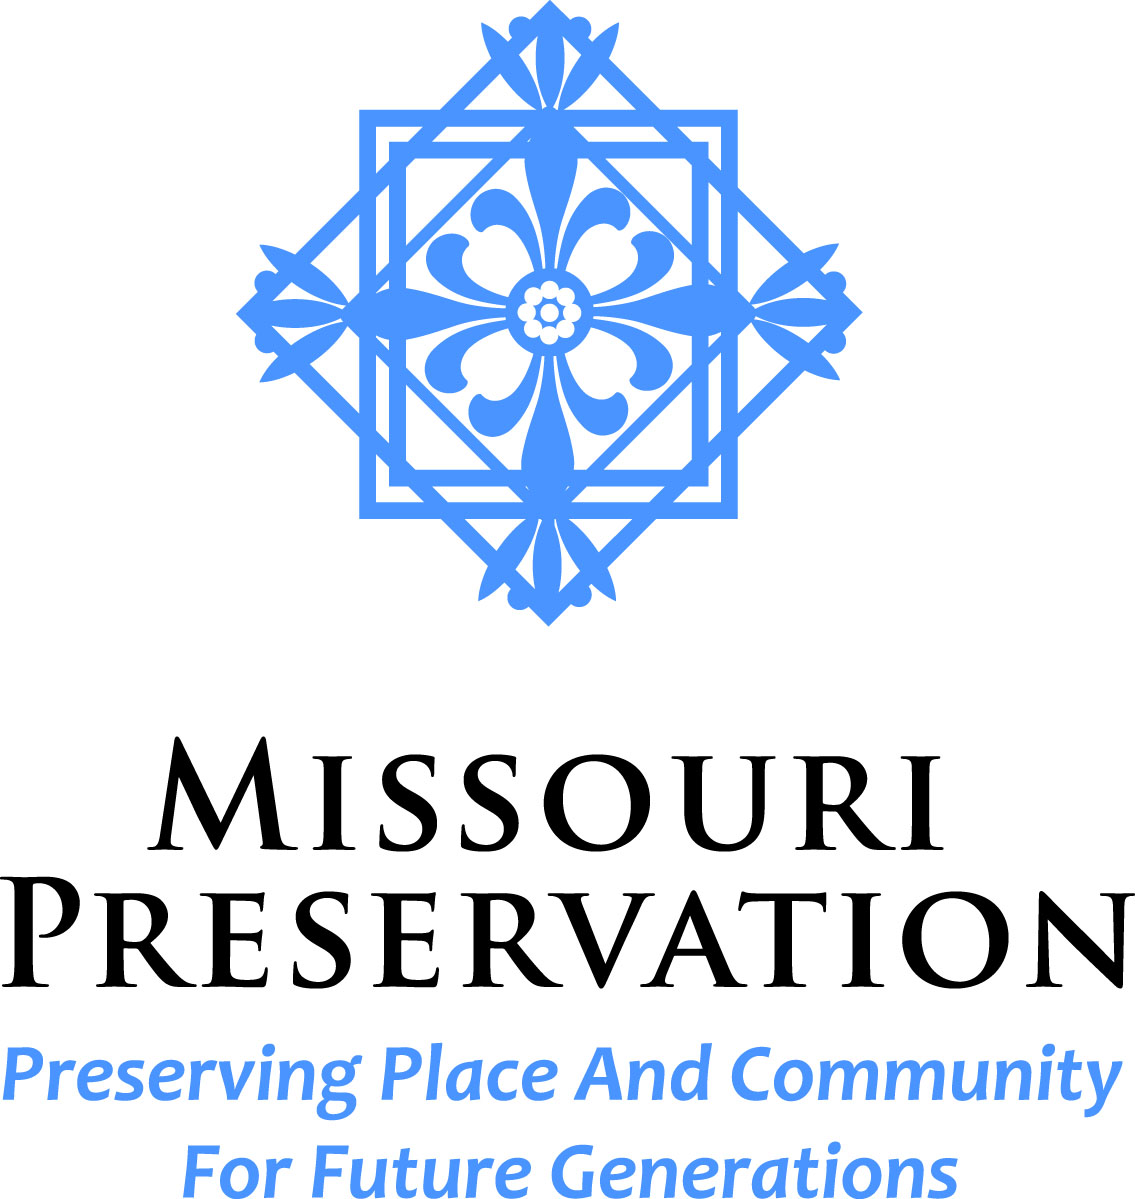 Missouri Preservation Website: